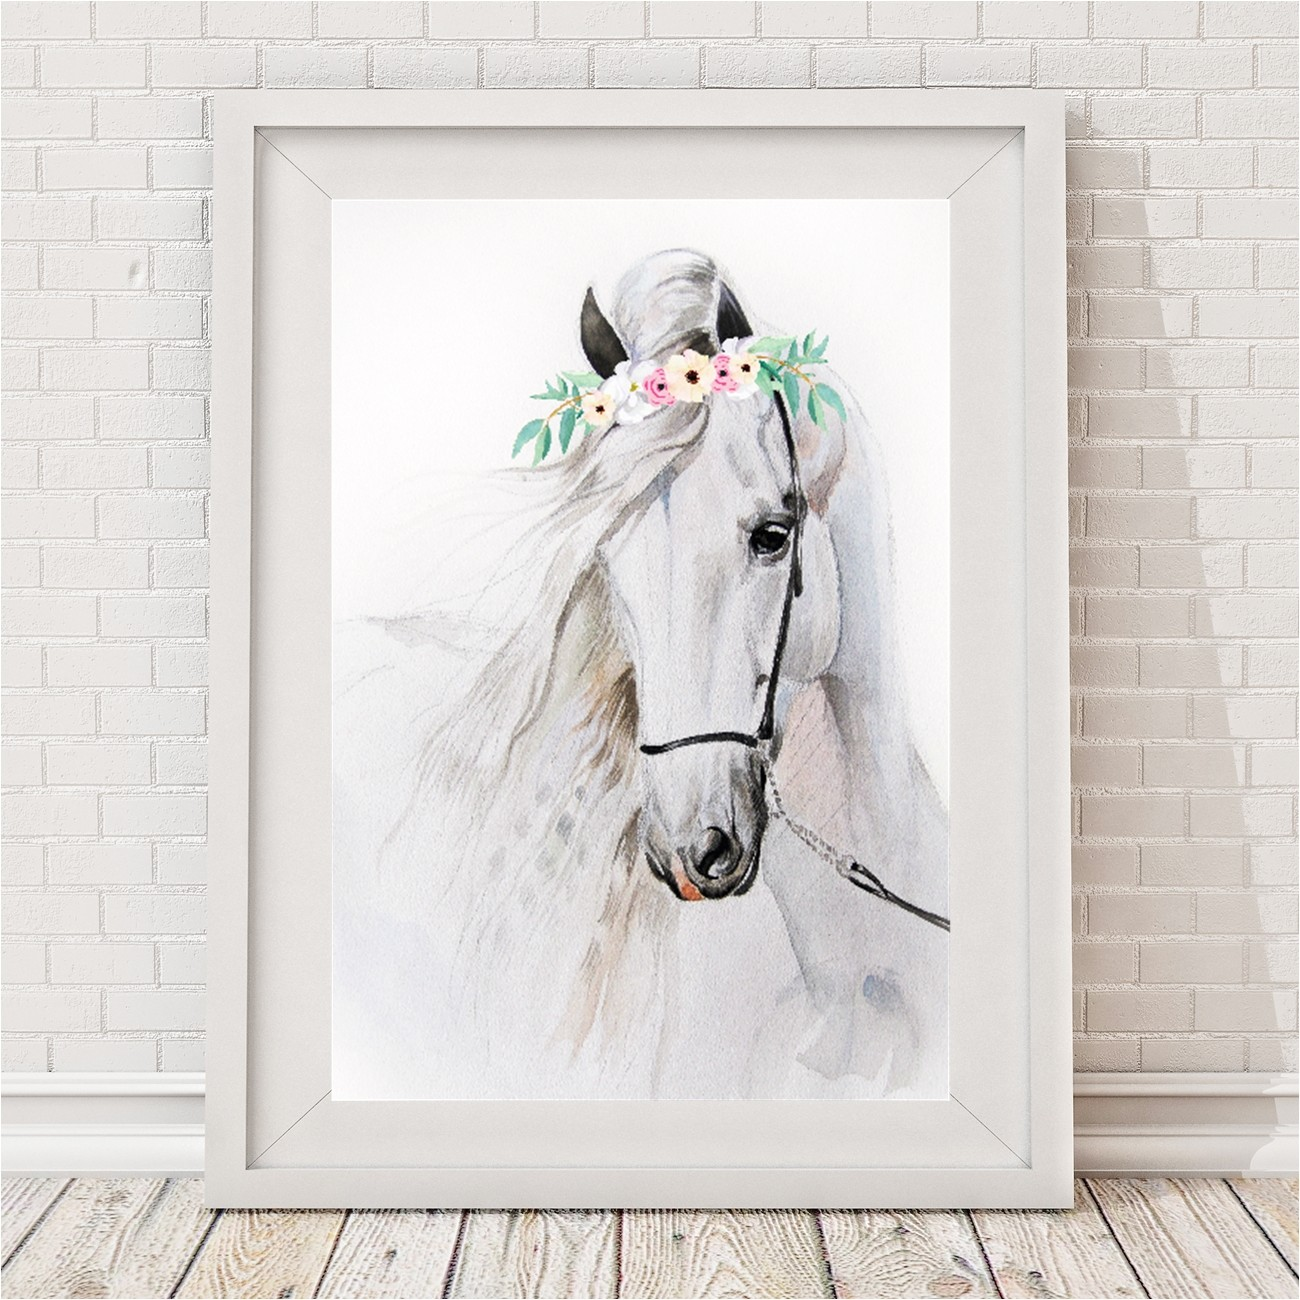 Australian Wall Stickers Watercolour Horse Print Hardtofind